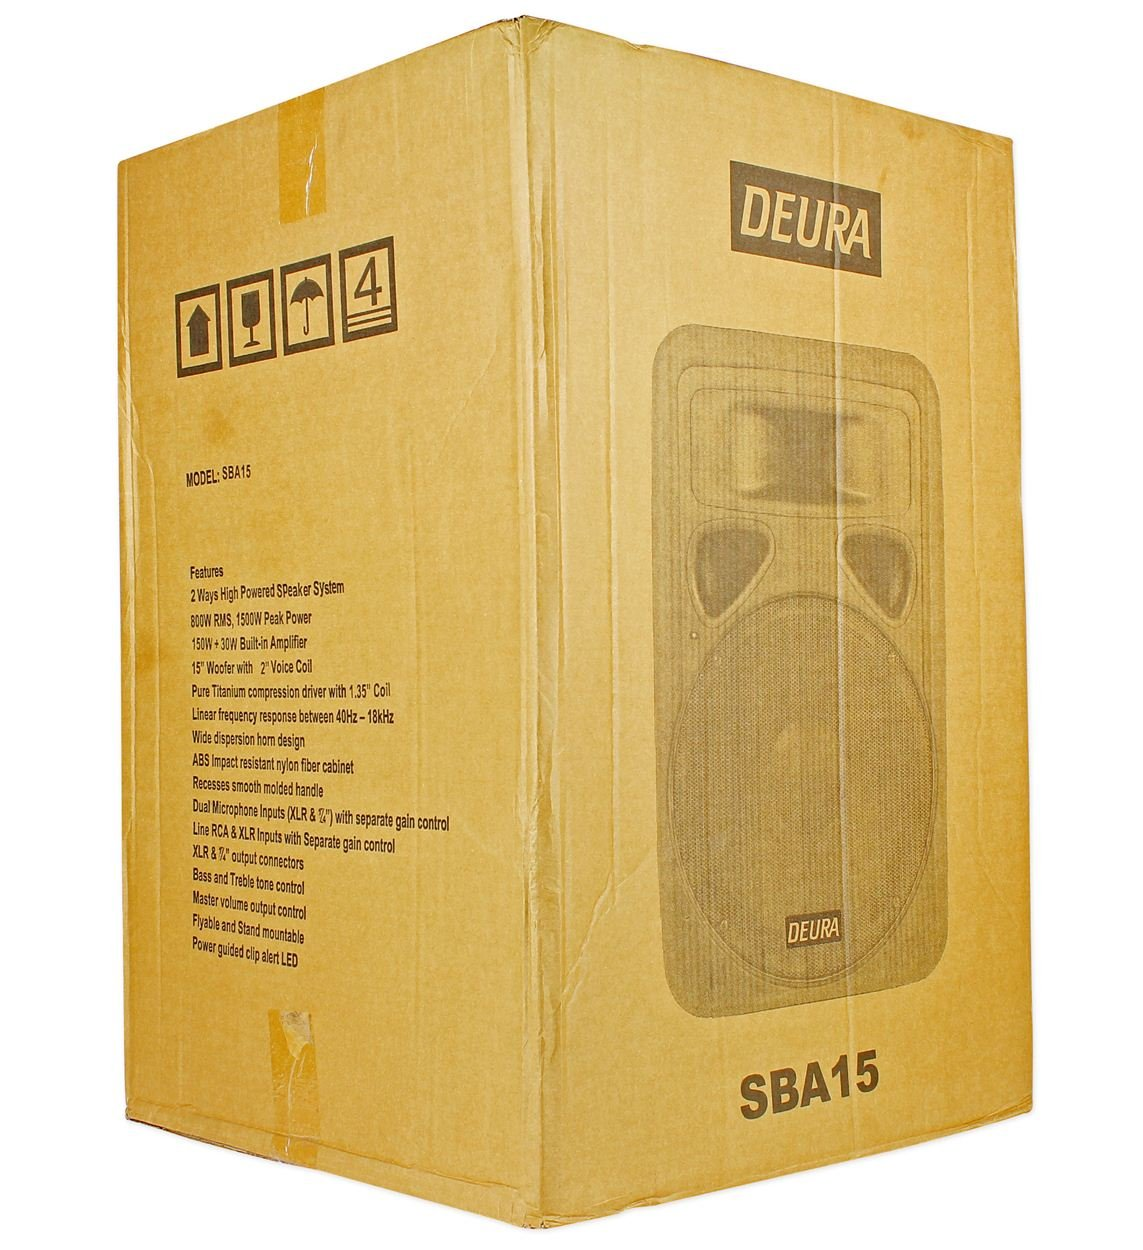 Deura Sba 15 1500 Watt Professional Powered Dj Pa Treble Tone Control Live Sound Speaker With Bass And Musical Instruments